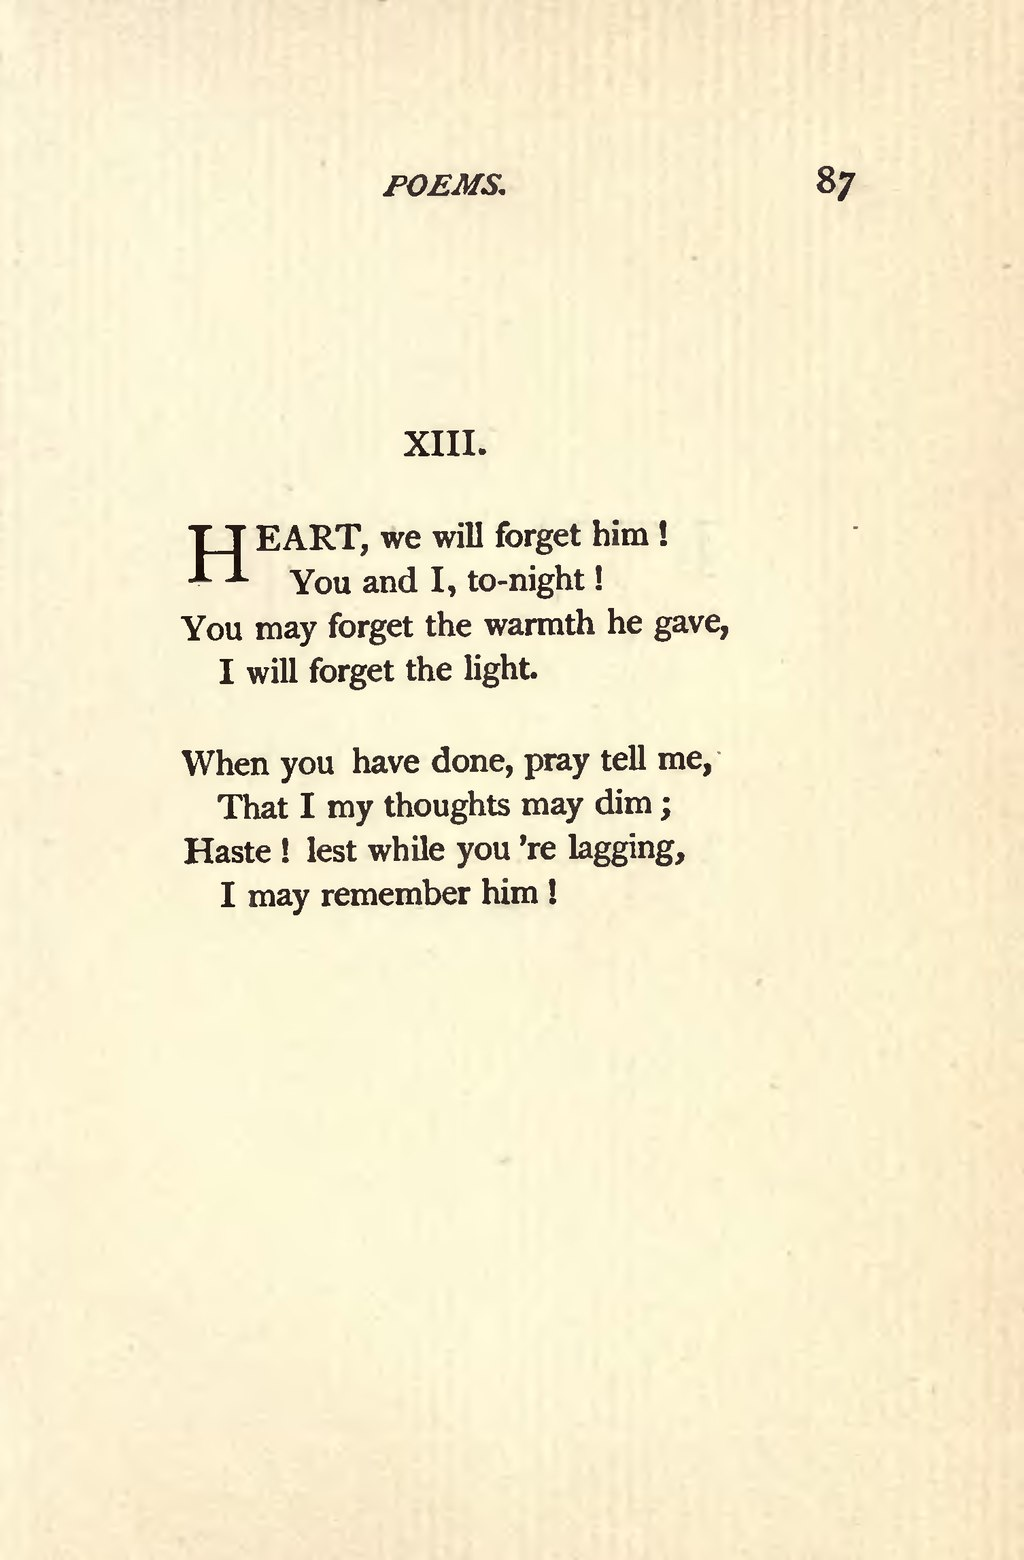 heart we will forget him poem